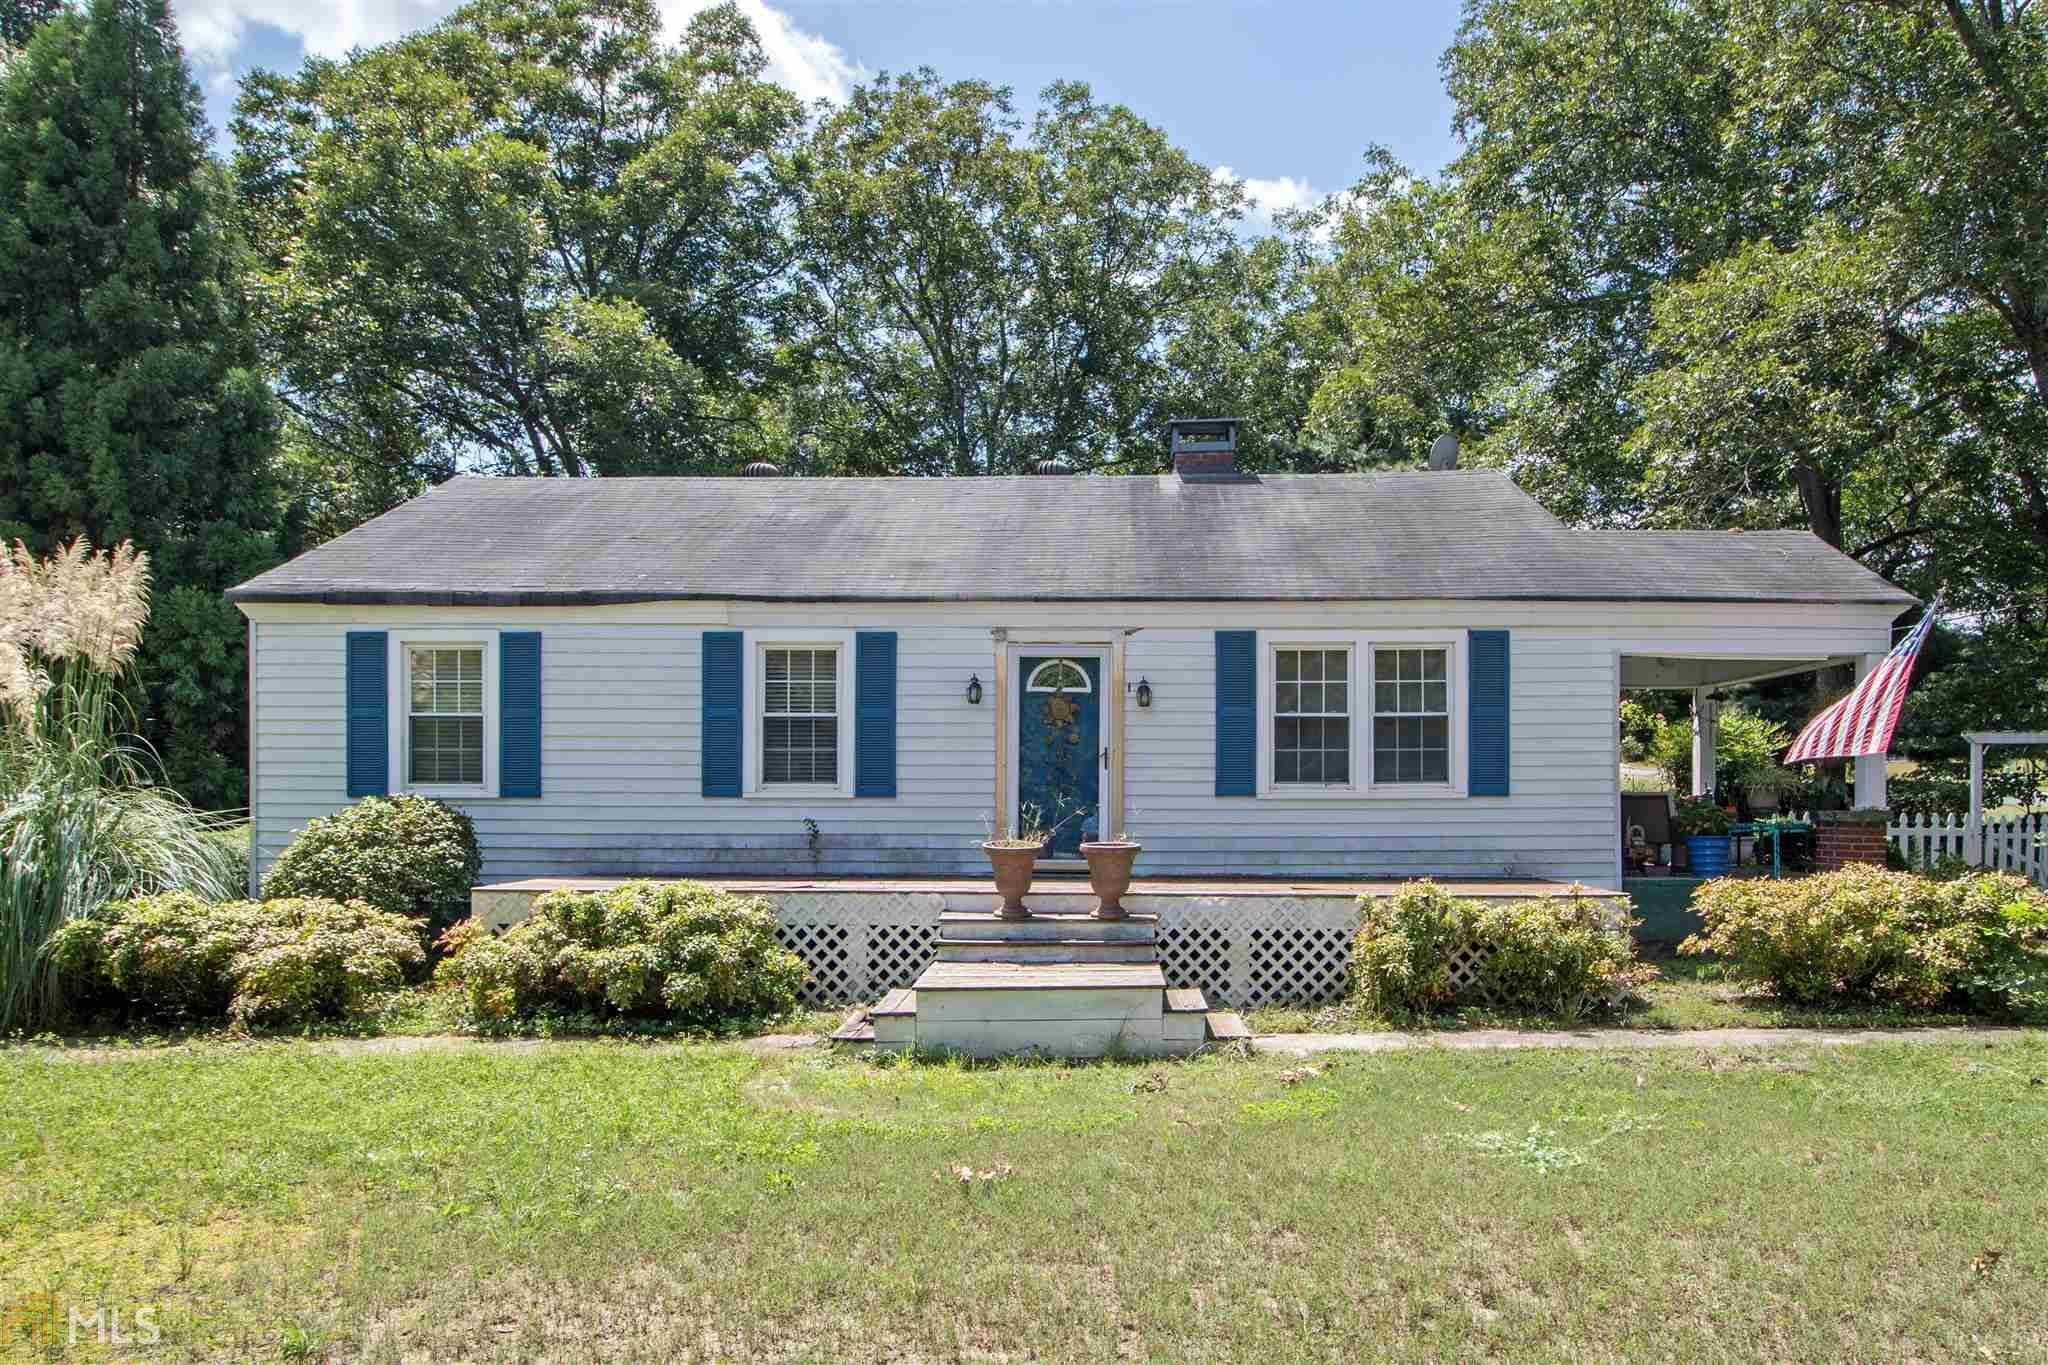 1781 Harbins Rd, Dacula, GA 30019 - 3 Bed, 2 Bath Single-Family Home - MLS#  8646652 - 40 Photos | Trulia